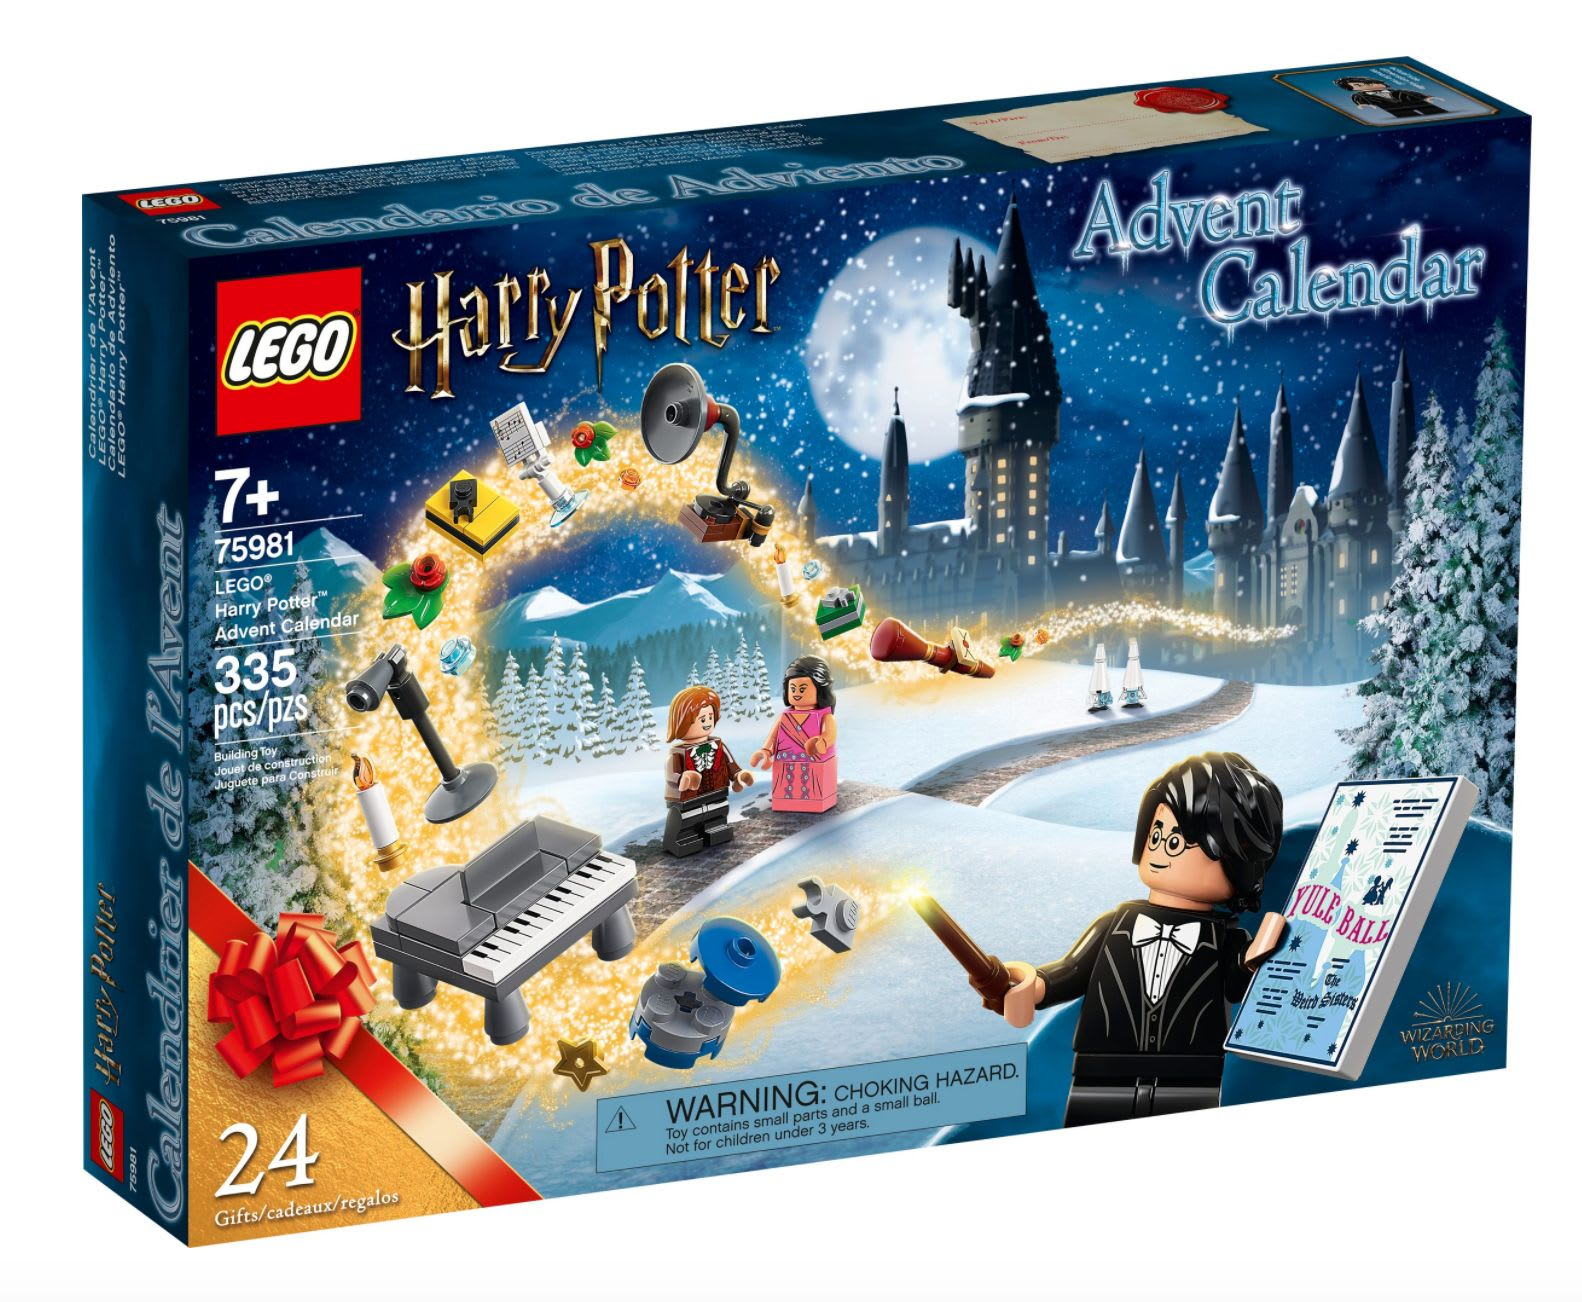 Discover the LEGO Harry Potter 2020 Advent Calendar available at LEGO.